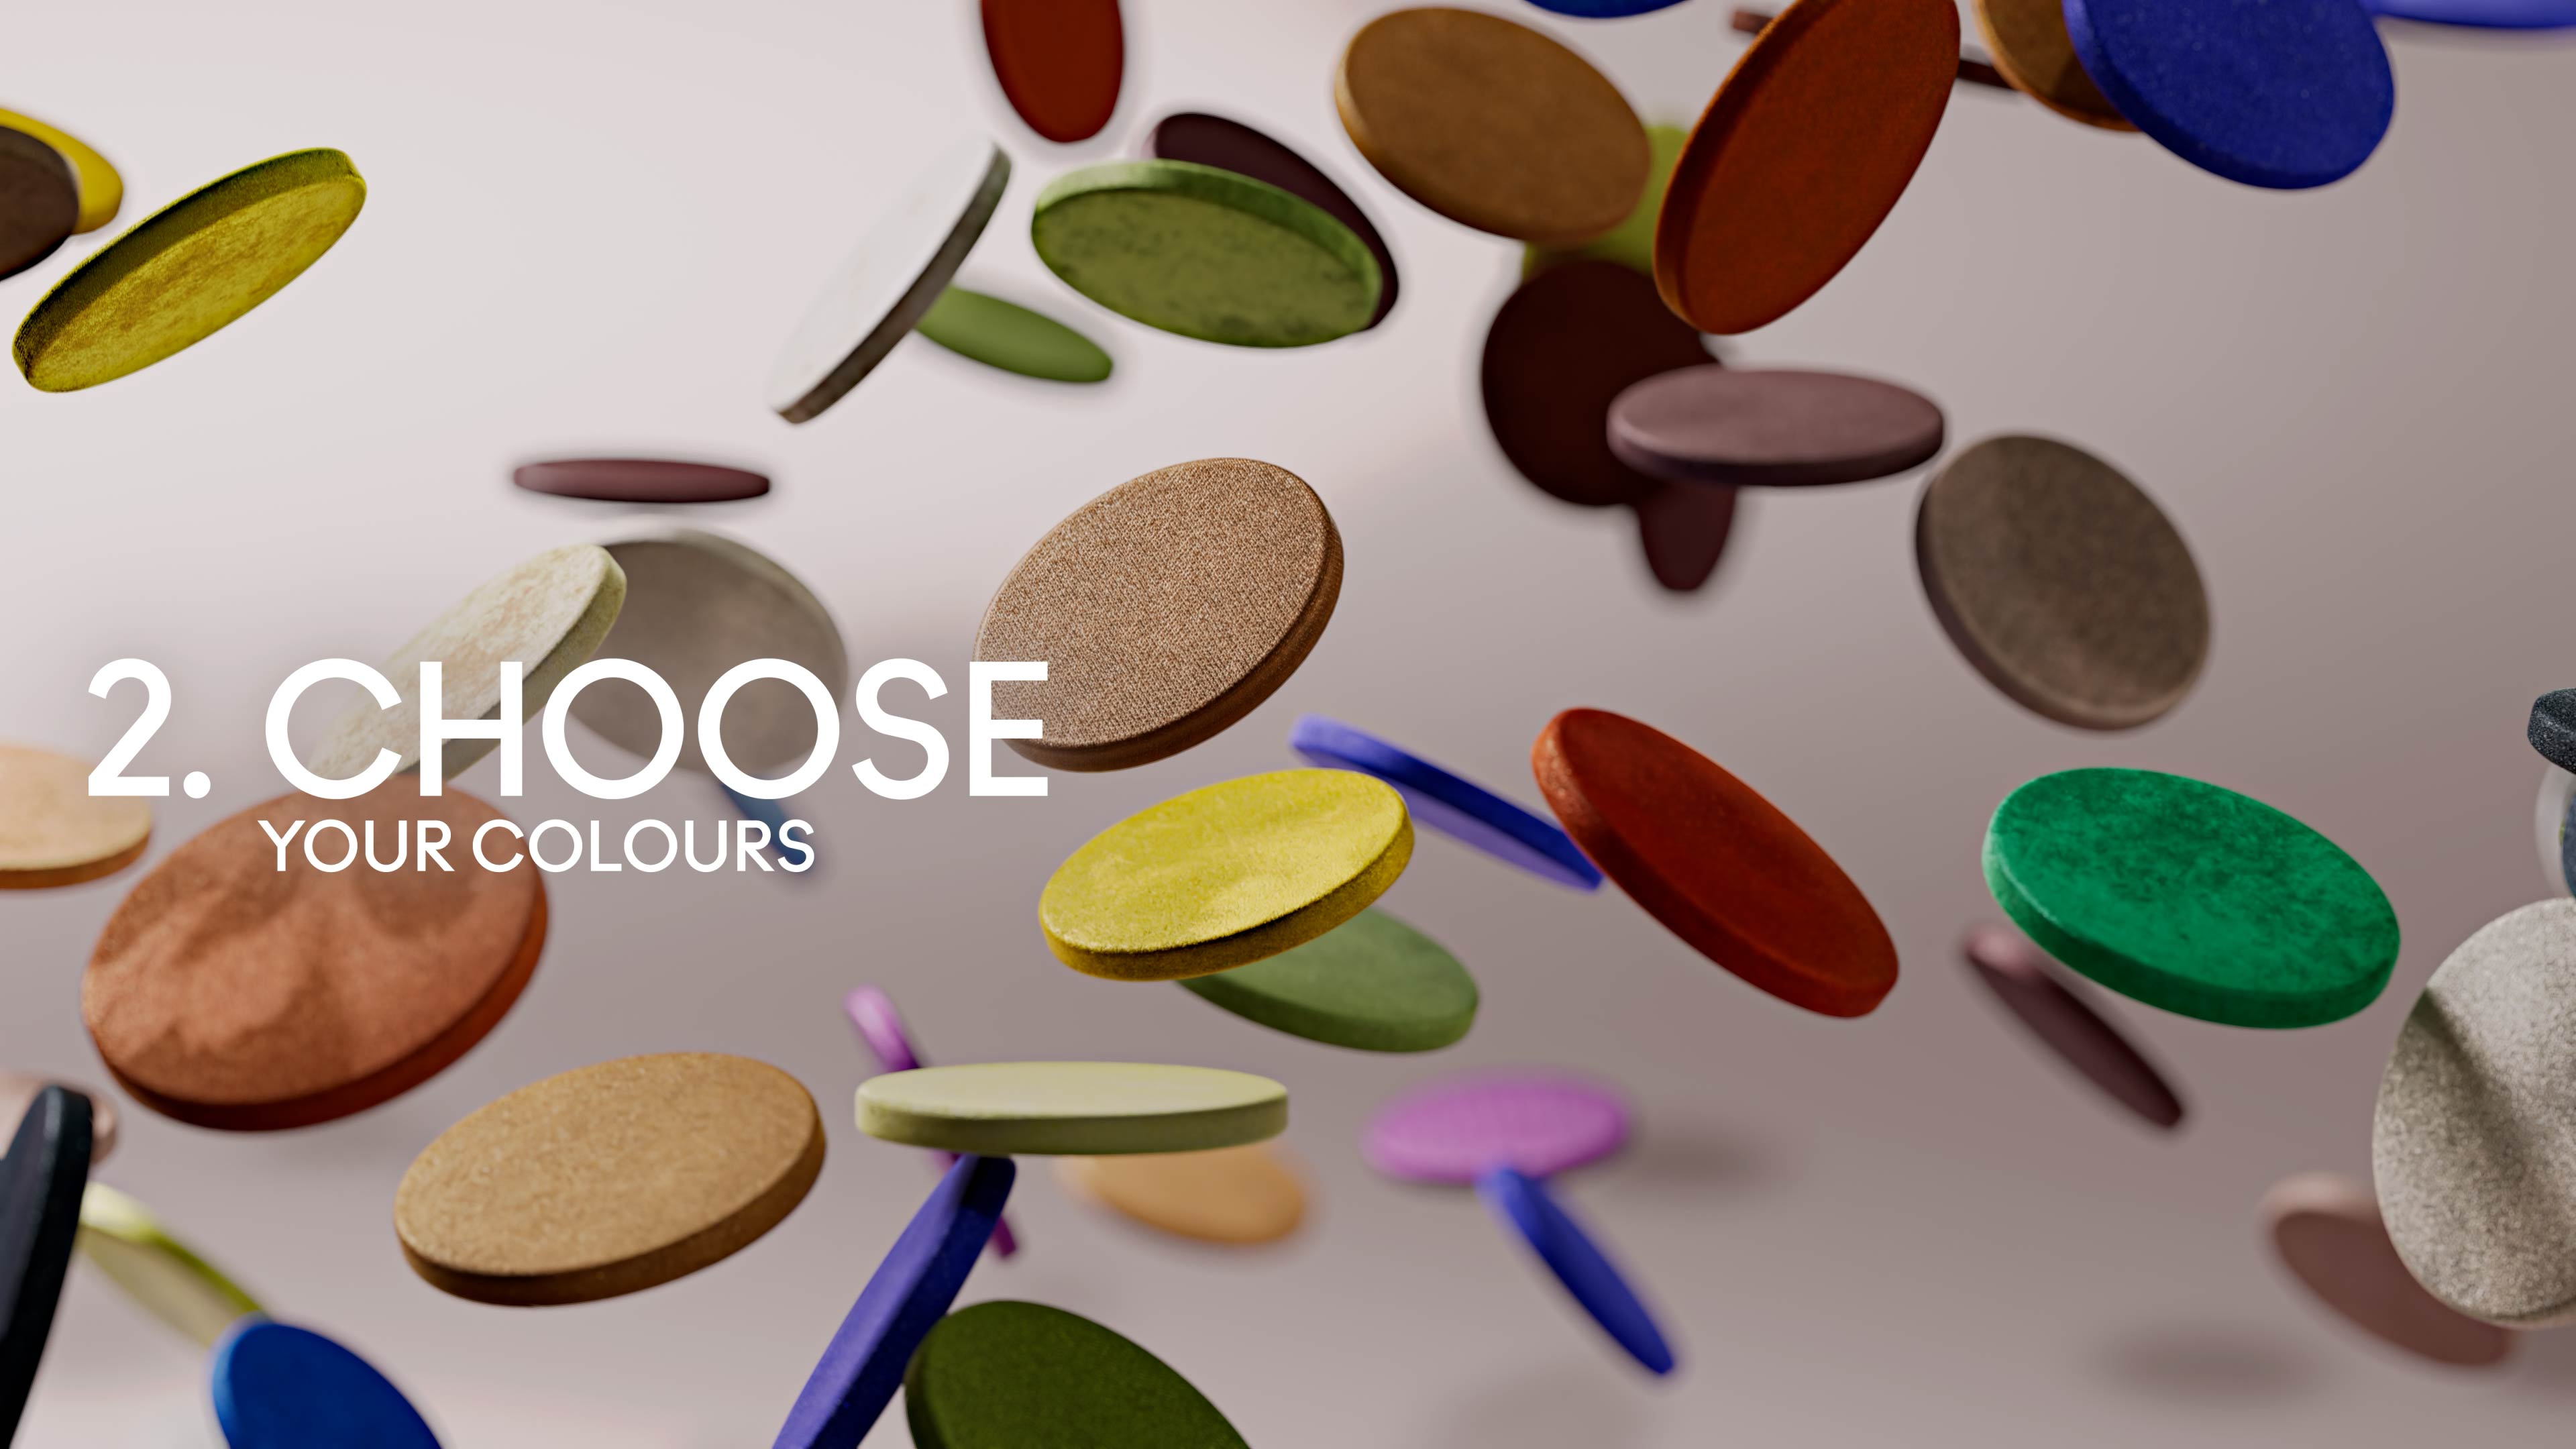 3D motion design with levitating colored cosmetic powder